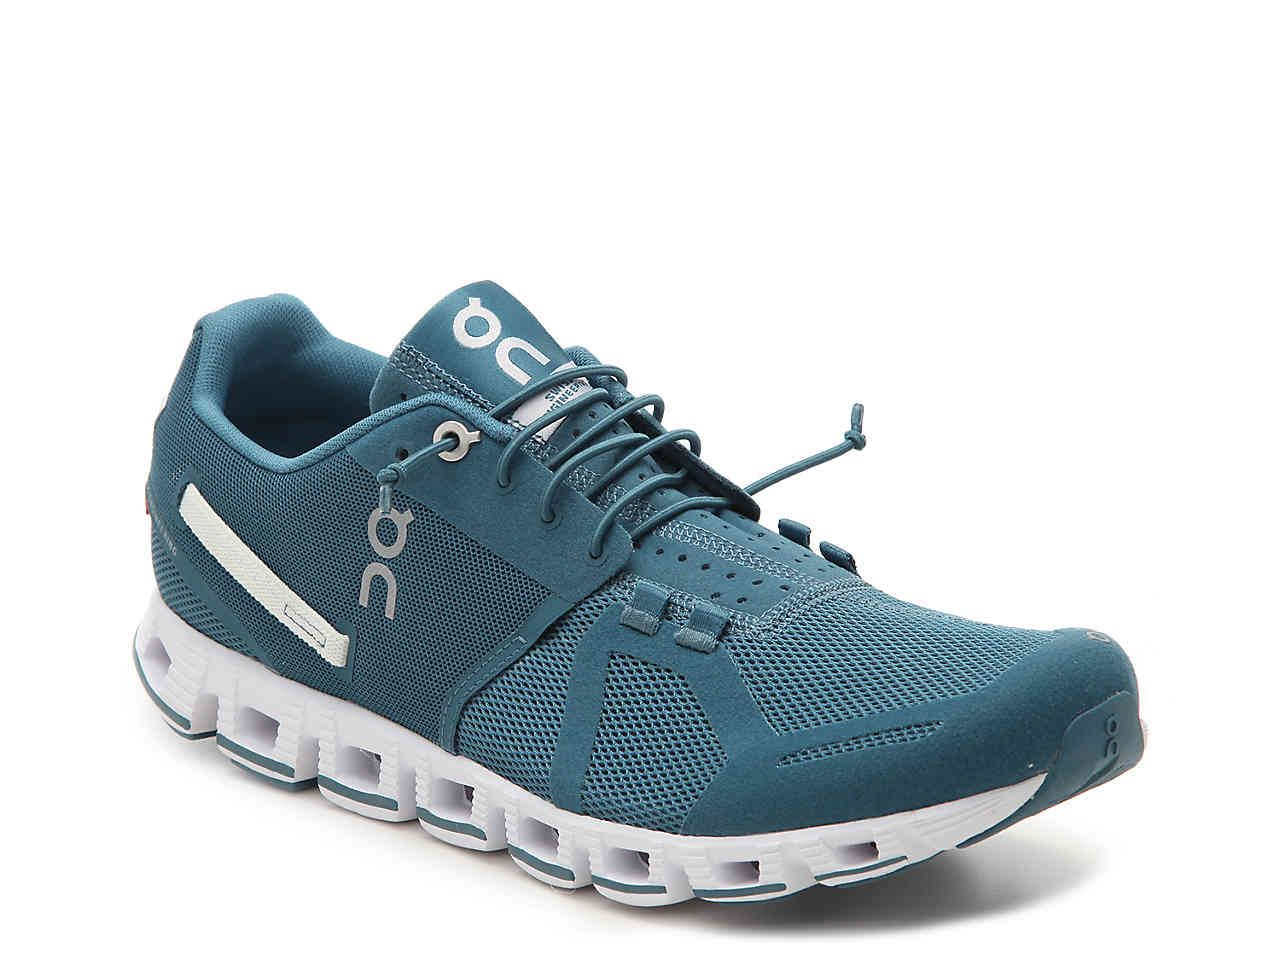 6aec5f8882ba4 Cloud 9 Lightweight Running Shoe - Men's in Storm Blue | sports ...